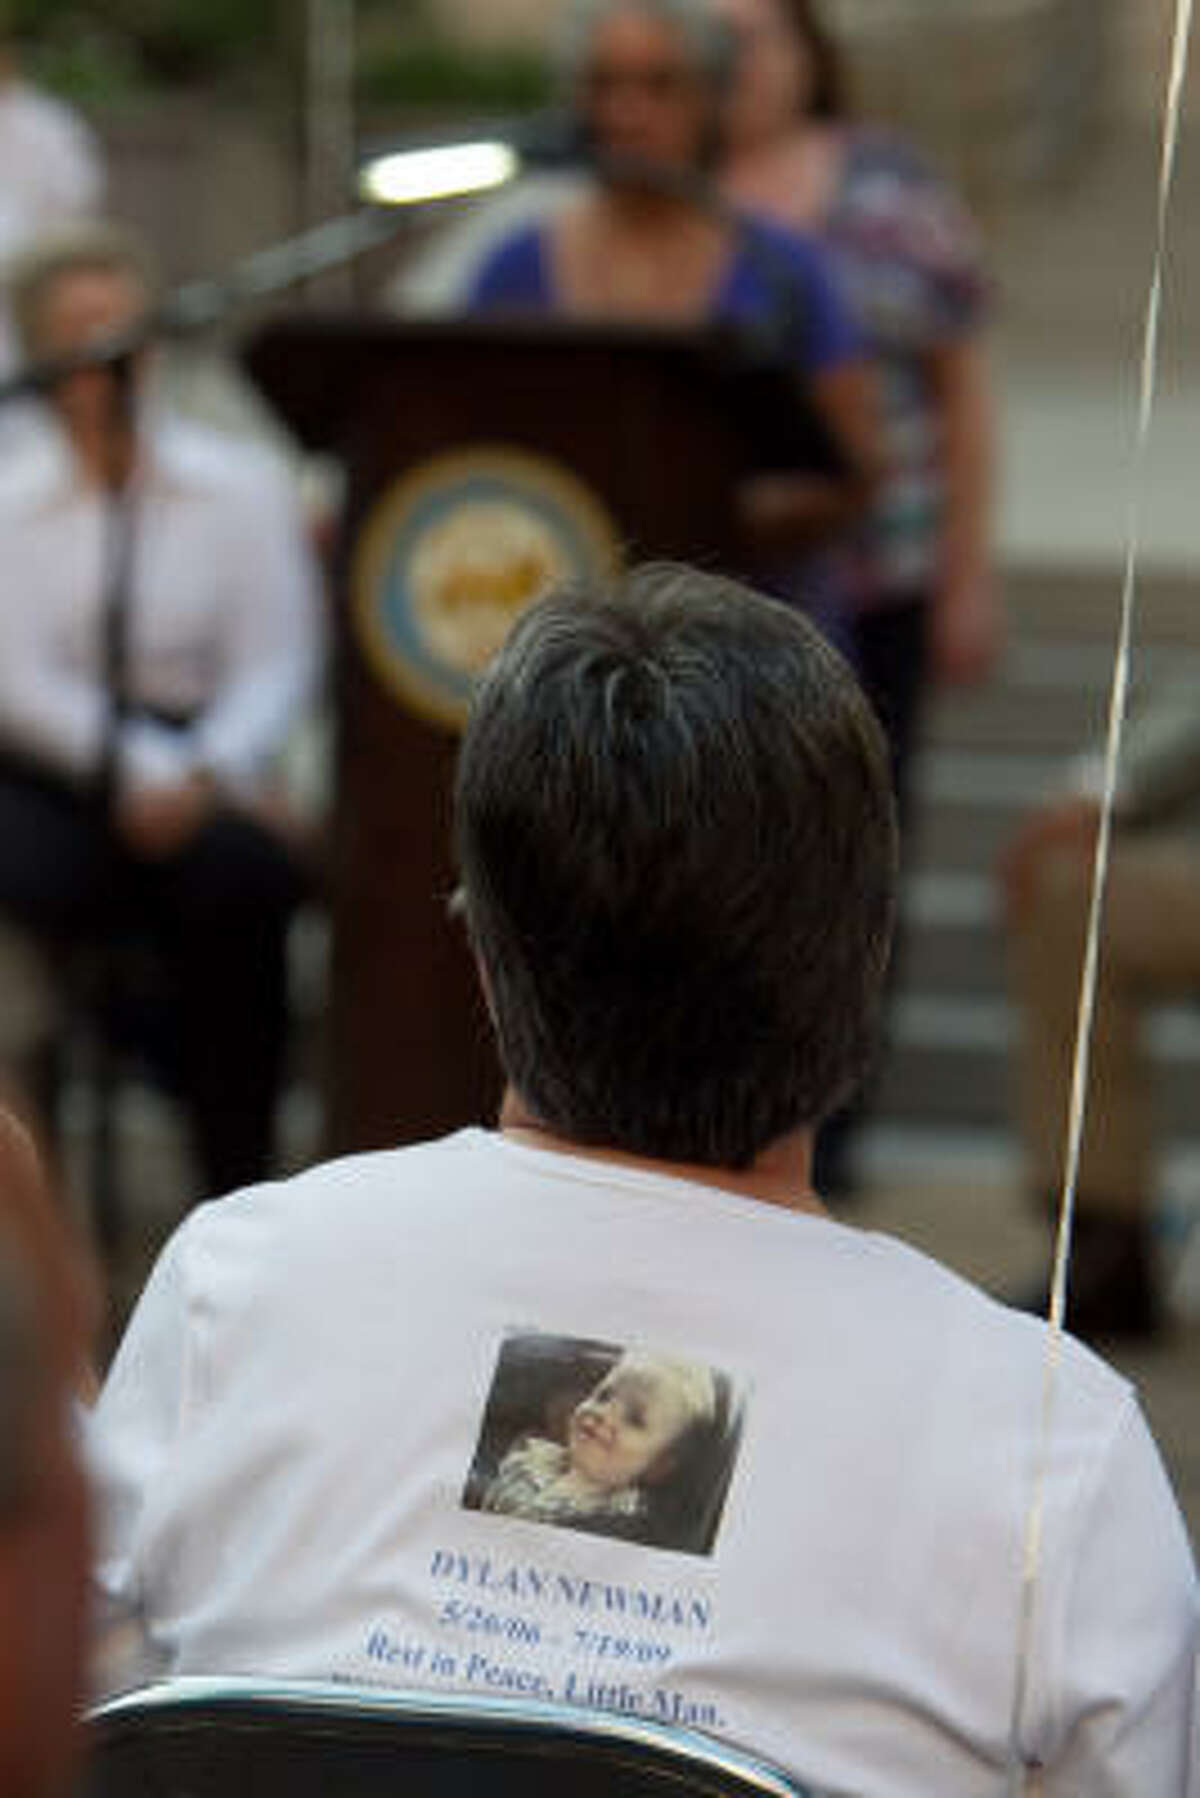 A woman wears a shirt in remembrance of a Dylan Newman who was murdered in July of 2009.